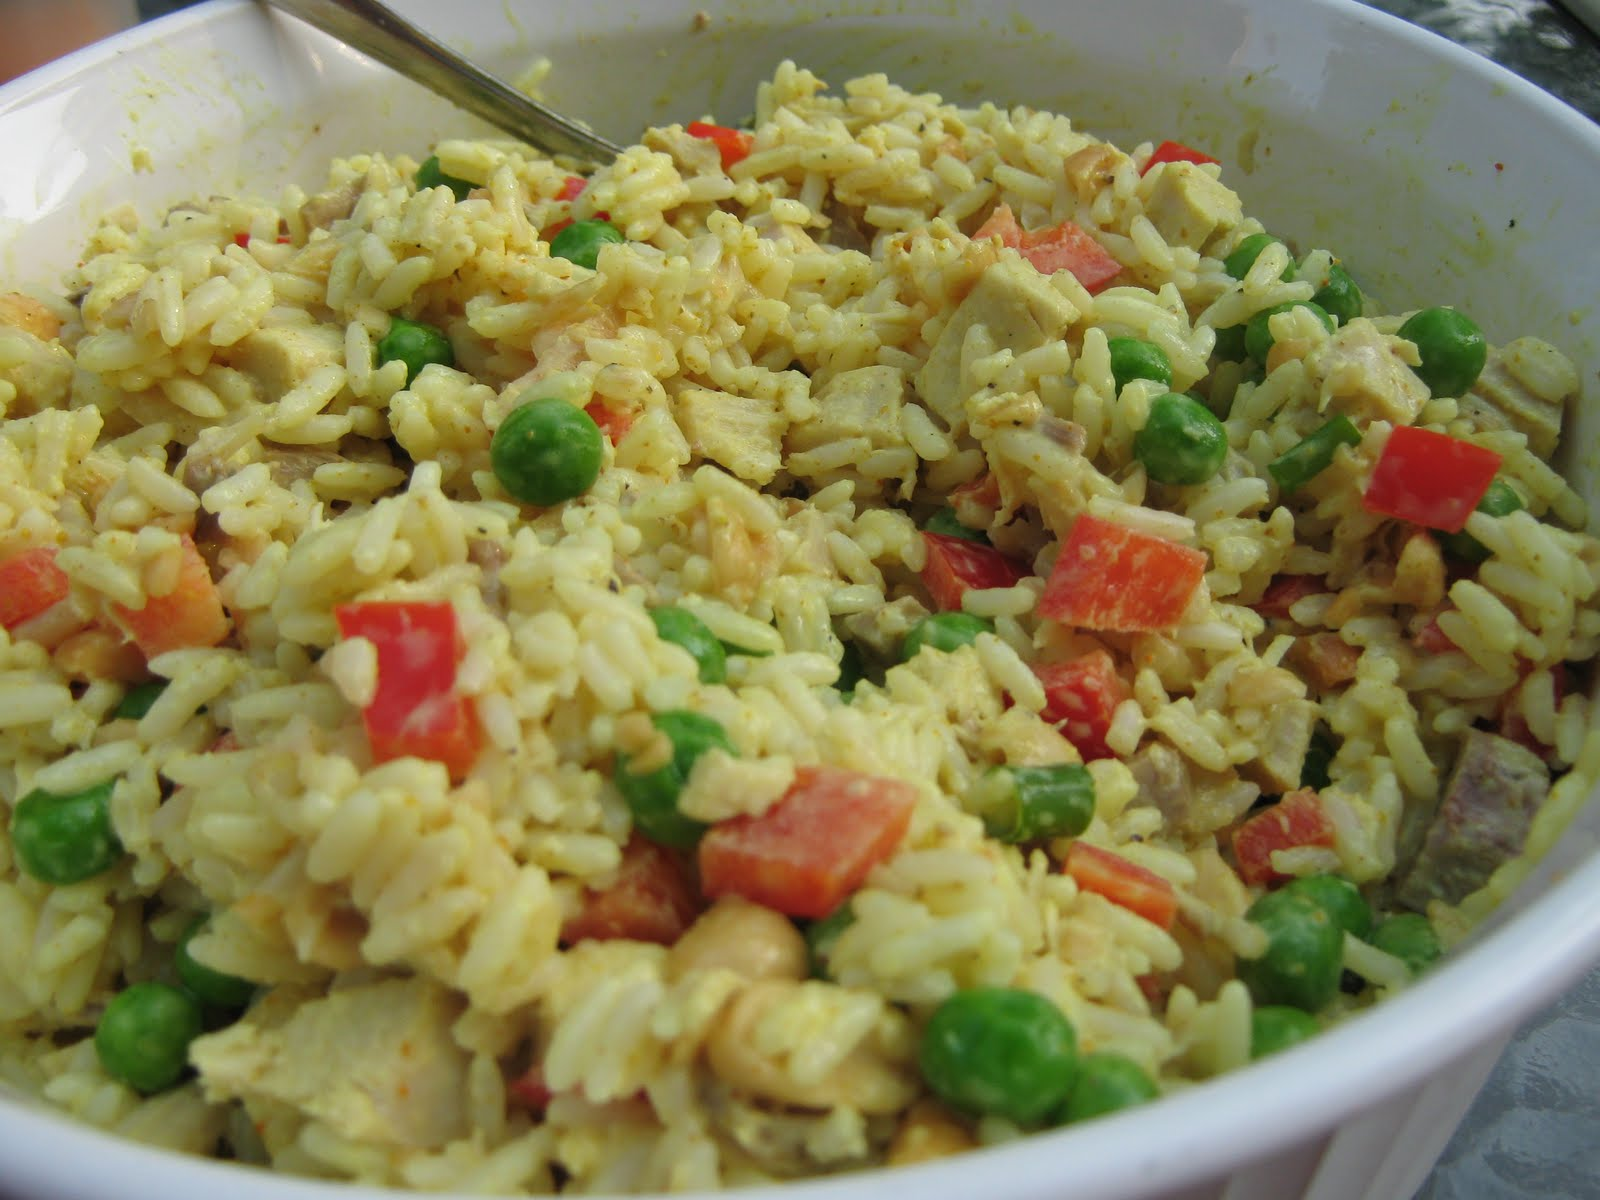 Abundance on a Dime: RECIPE: Curried Turkey & Rice Salad